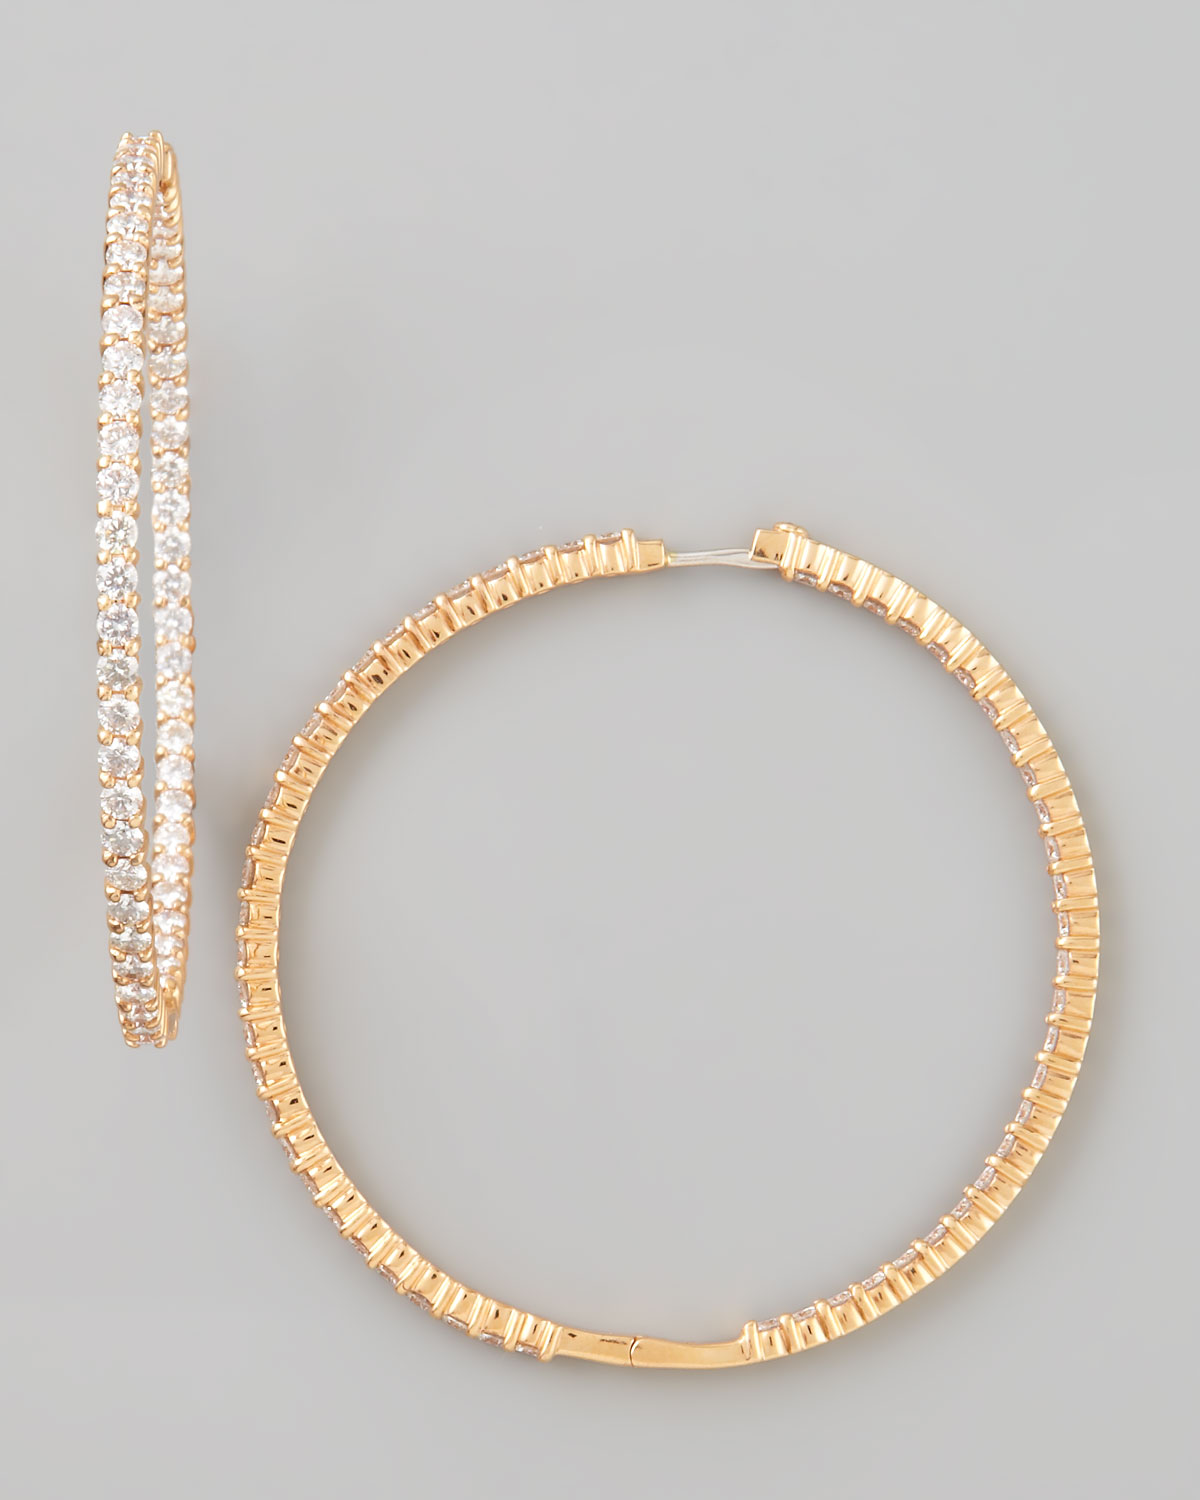 59mm Rose Gold Diamond Hoop Earrings, 7.55ct